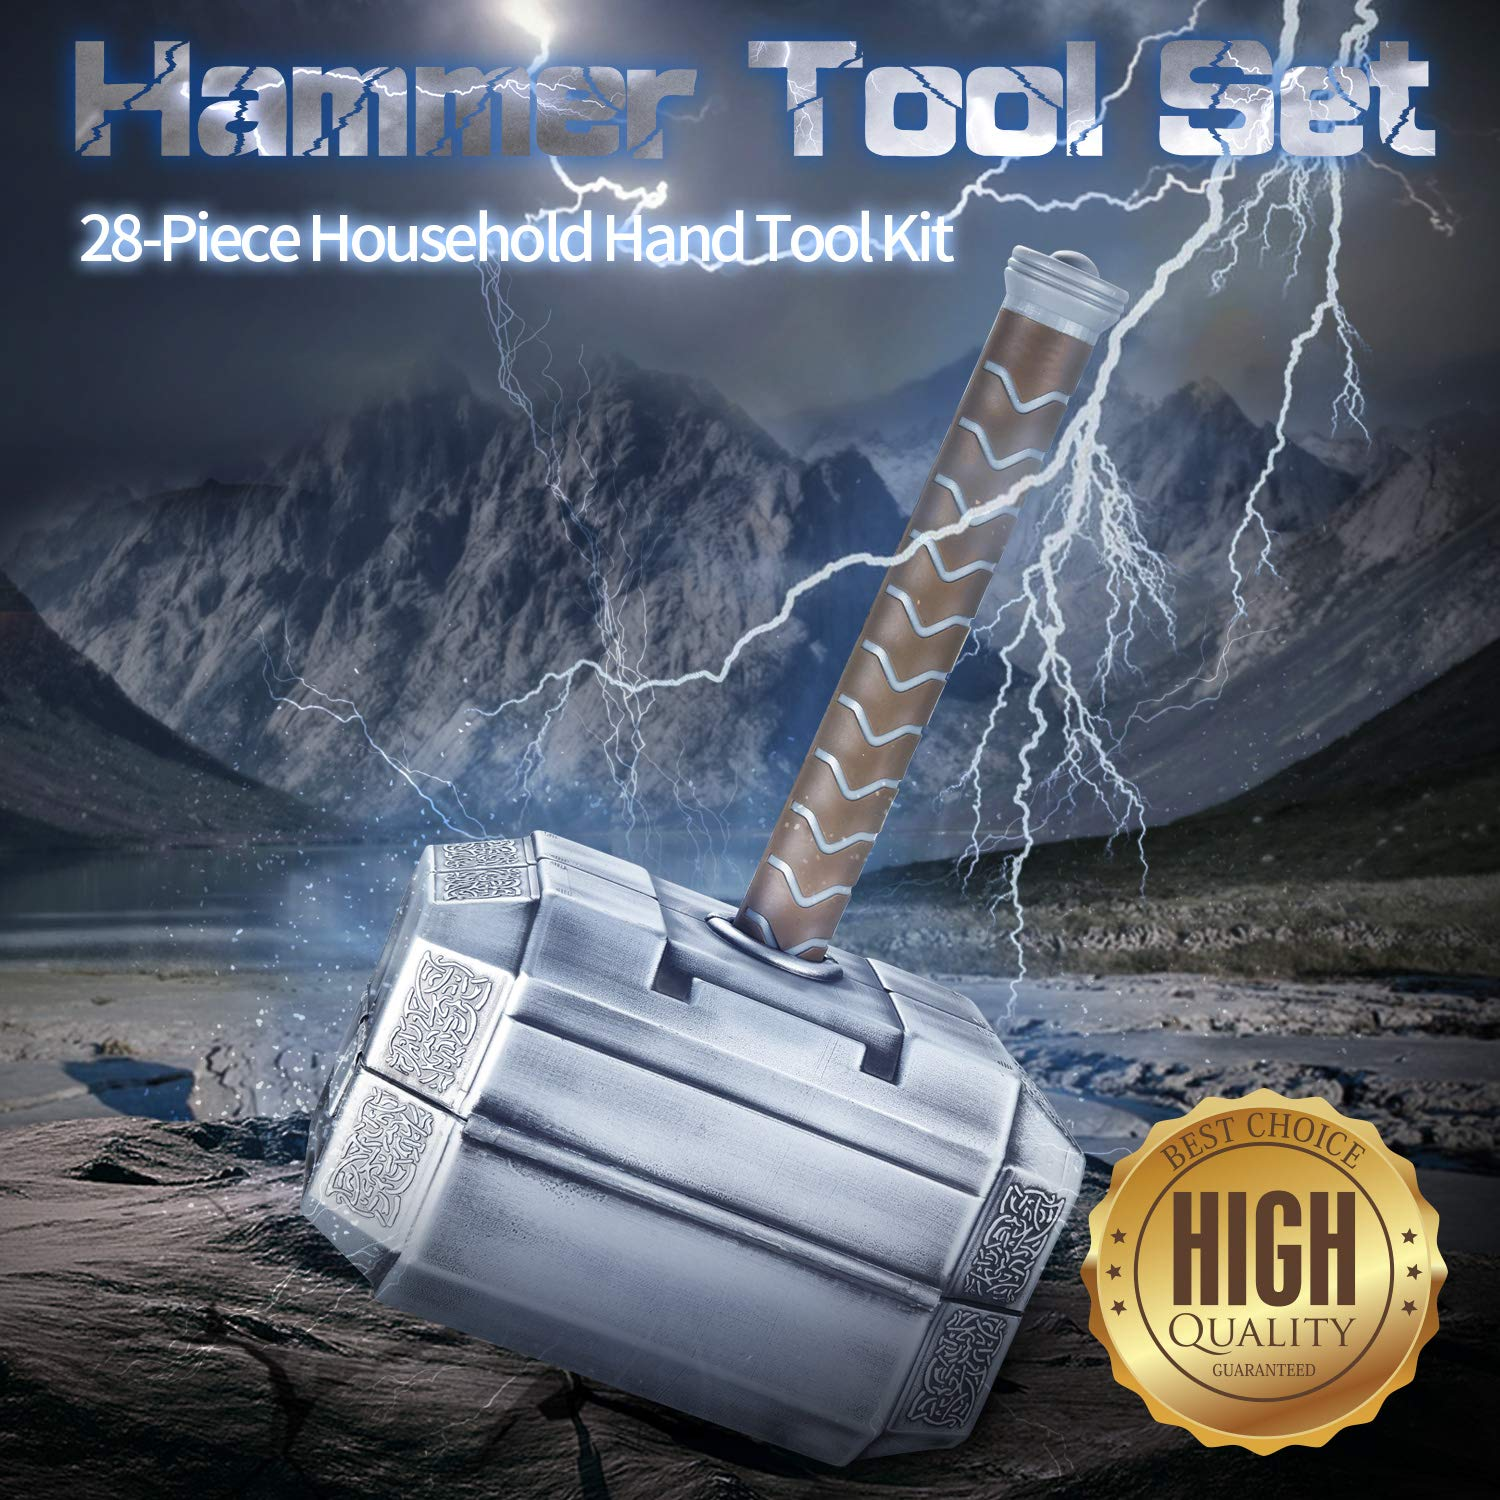 Buyton Avengers Thor Hammer Tool Set,28-Piece Household Hand Tool Kit -Thor Battle Hammer,Durable, Long Lasting Chrome Finish Tools with Thor Hammer case by buyton (Image #4)